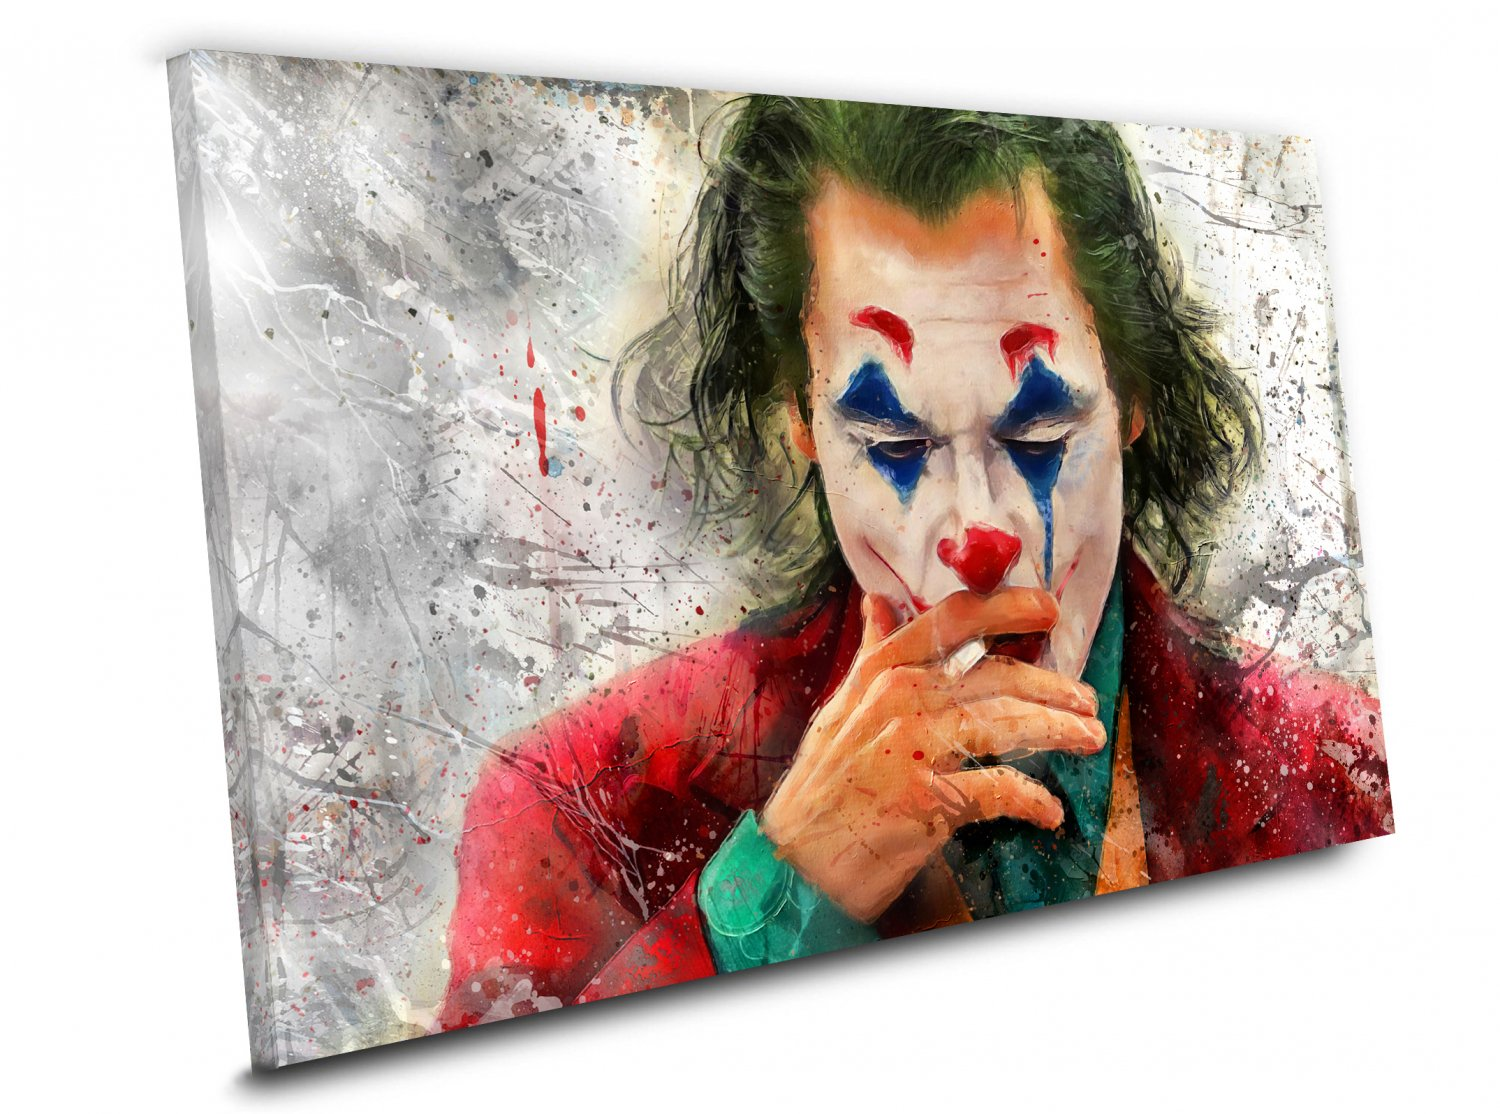 Joker Movie 2019 Joaquin Phoenix Arthur Fleck  8x12 inches Stretched Canvas